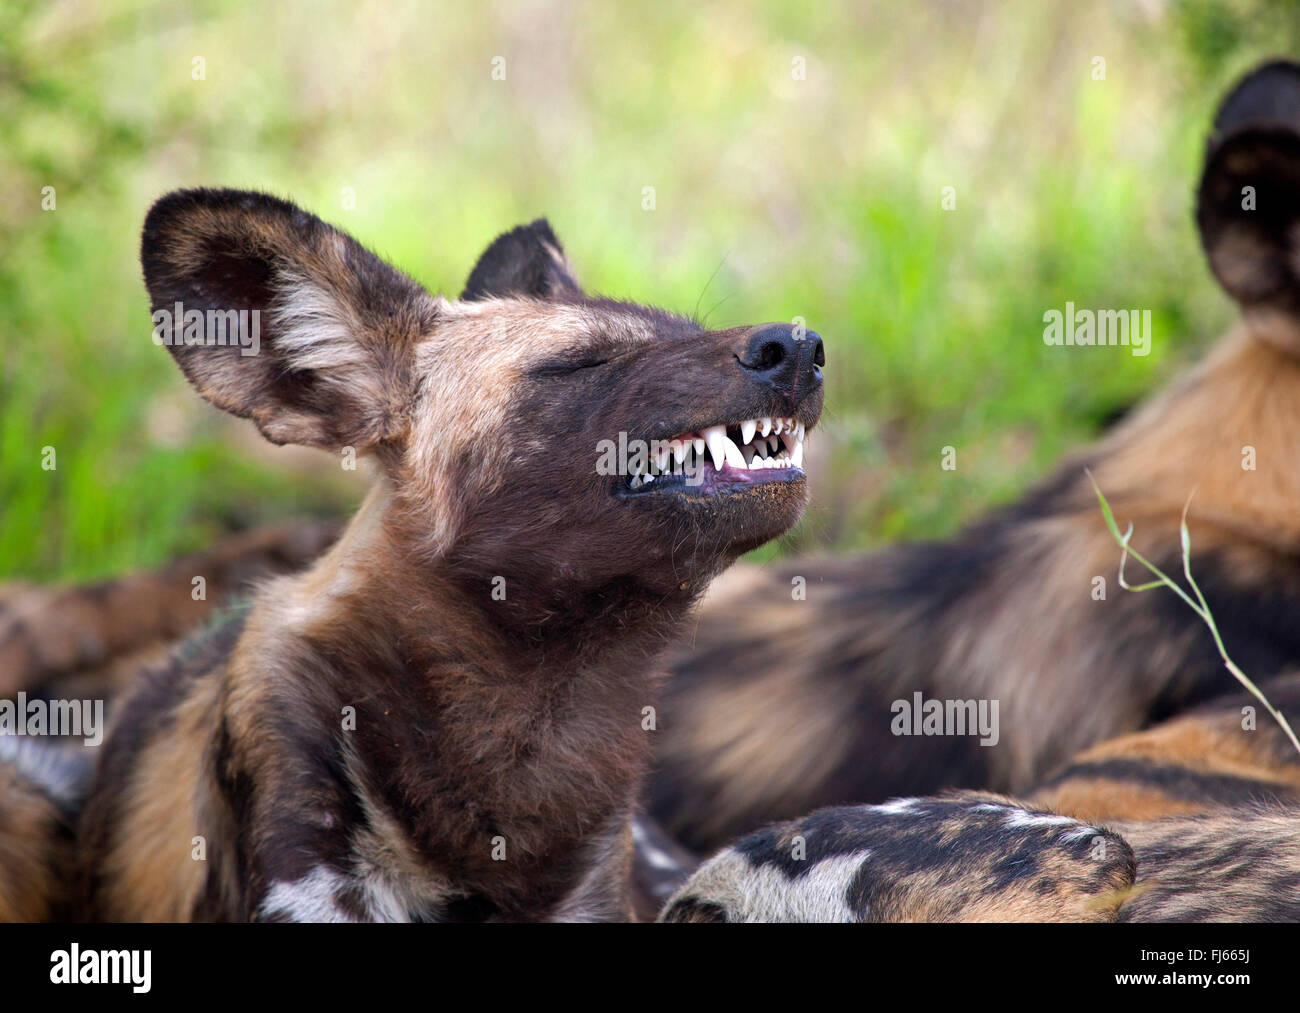 african wolf dog Scientists have discovered a new species of wild dog by analyzing the dna of jackals in europe and africa.